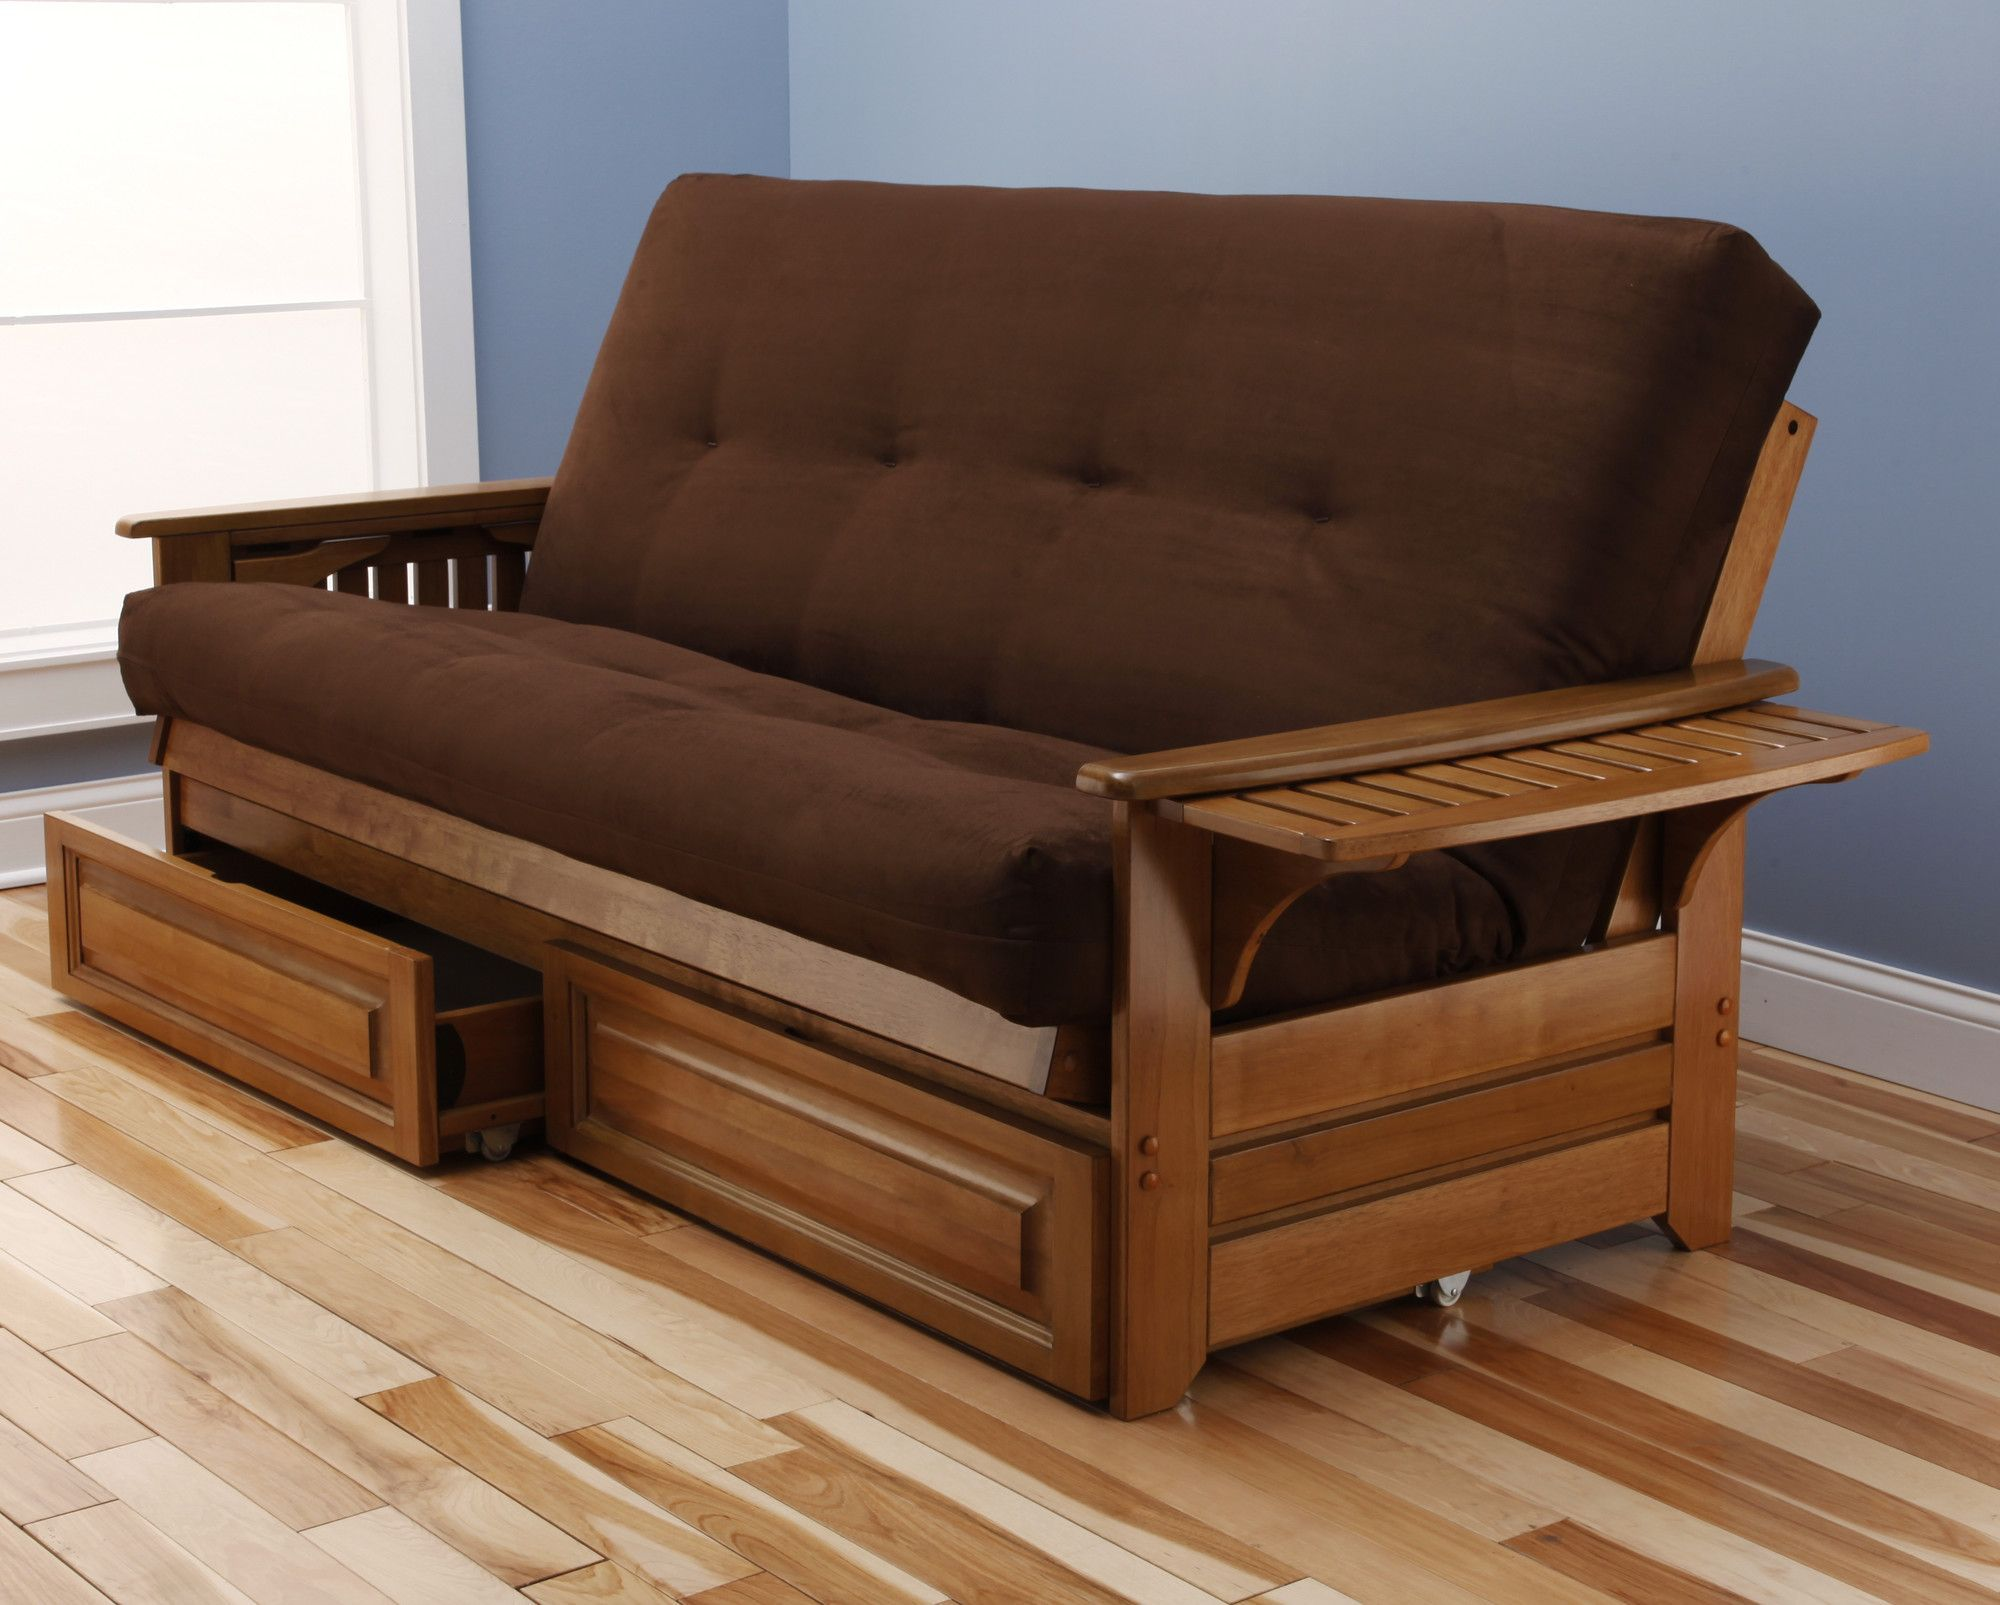 Phoenix Suede Storage Drawers Futon and Mattress | Muebles para el ...